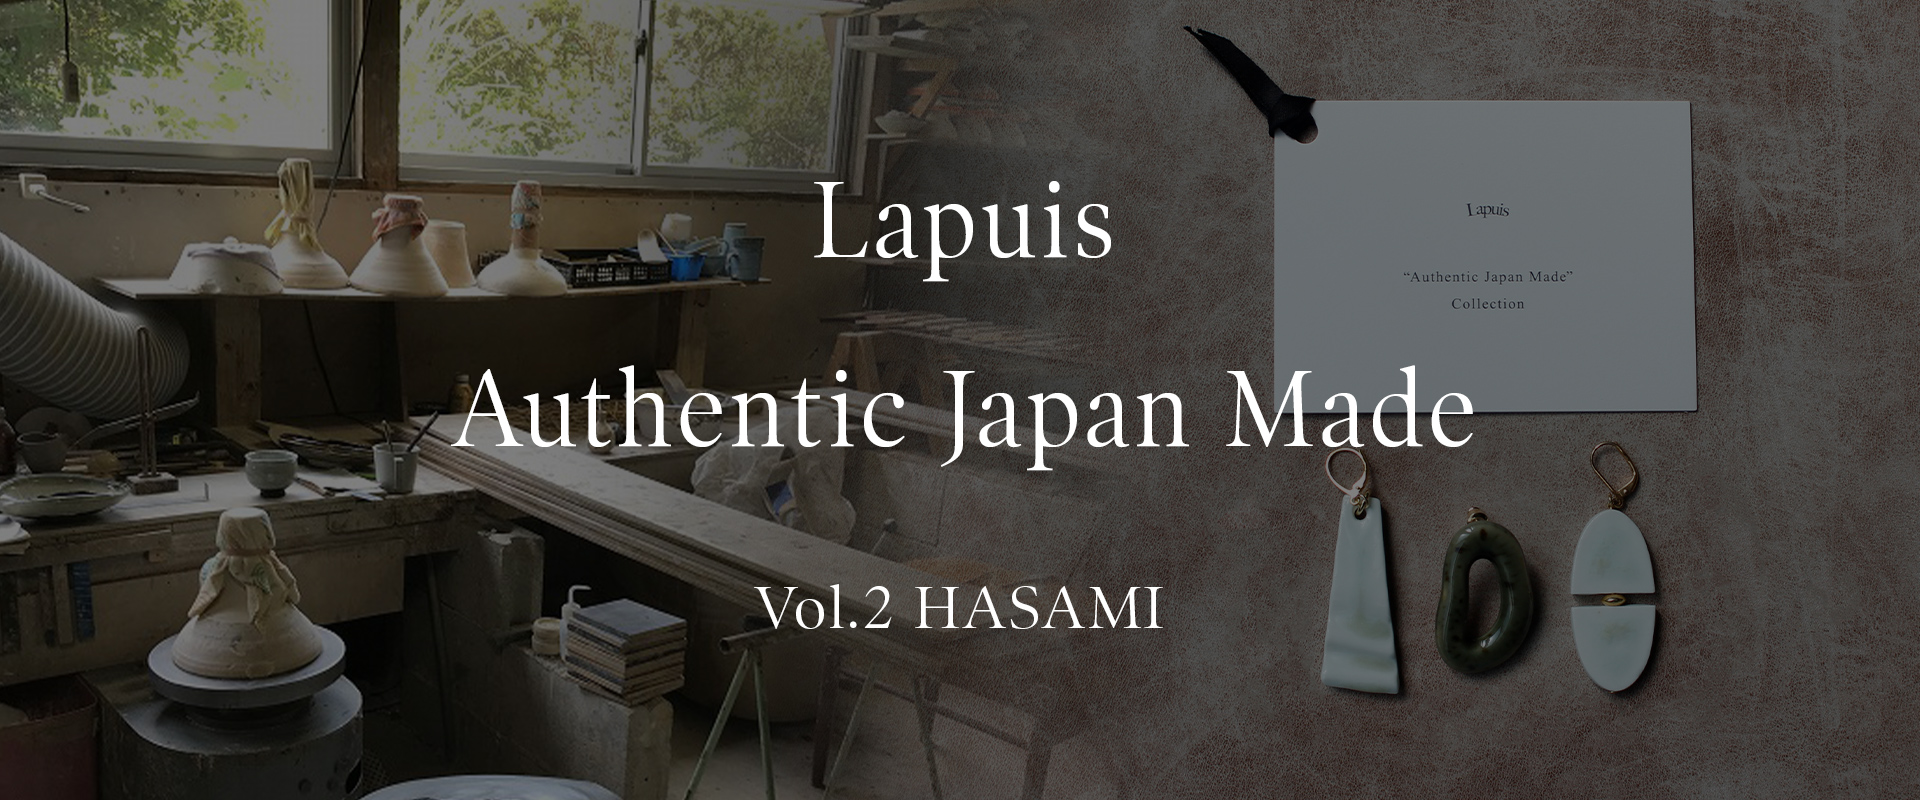 Authentic Japan Made Vol.2 HASAMI